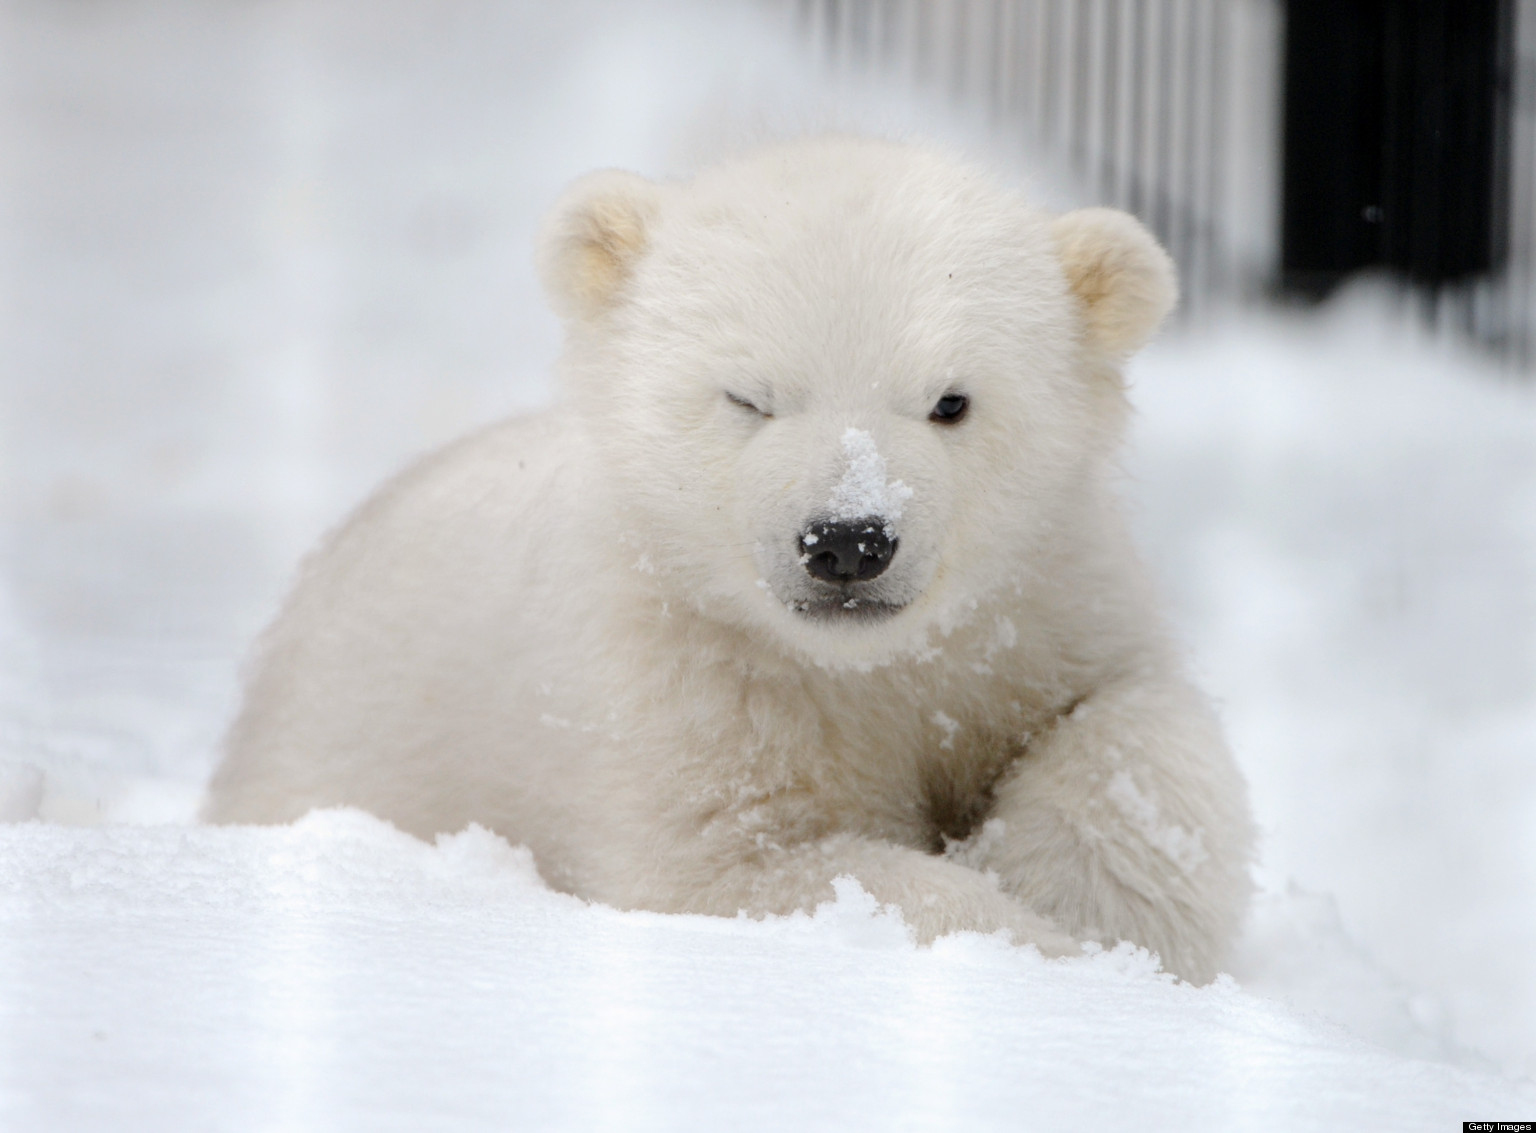 Kali The Orphaned Polar Bear Cub To Move From Alaska Zoo